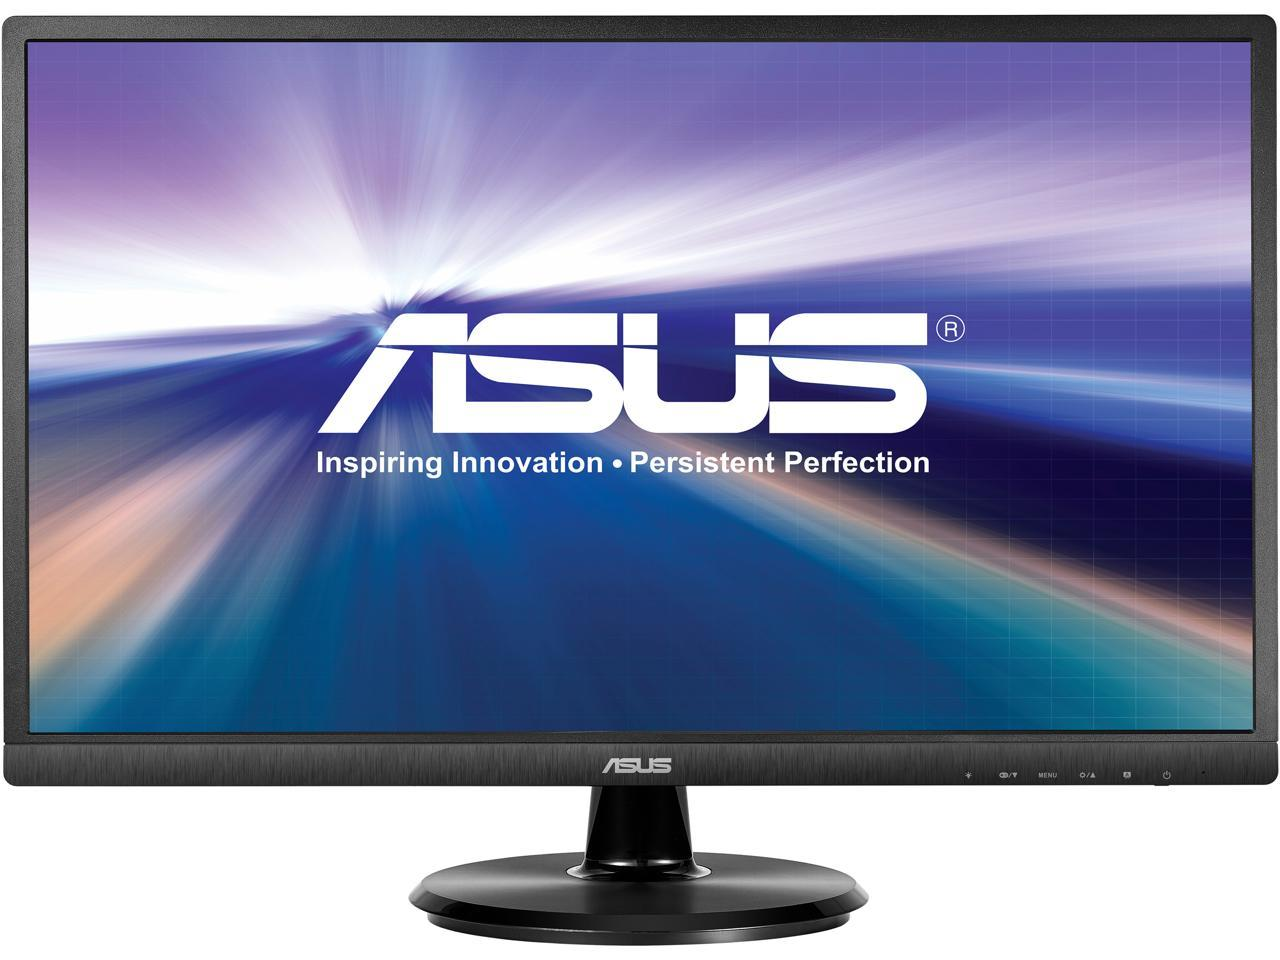 "ASUS 23.8"" Full HD LCD Monitor w/ ASUS Eye Care Ultra Low-Blue Light and Flicker-Free Technology"